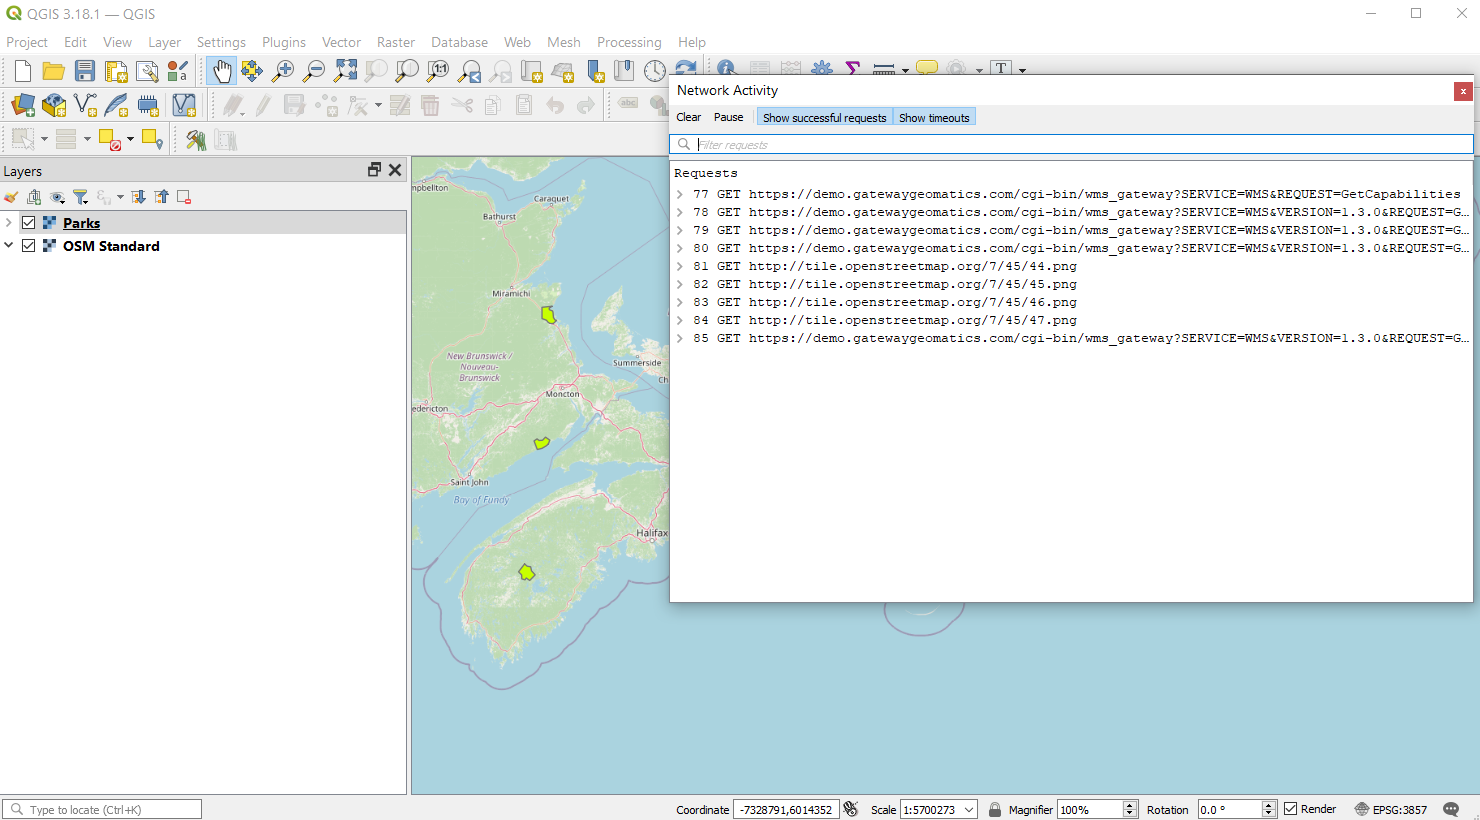 ../_images/qgis-network-logger2.png